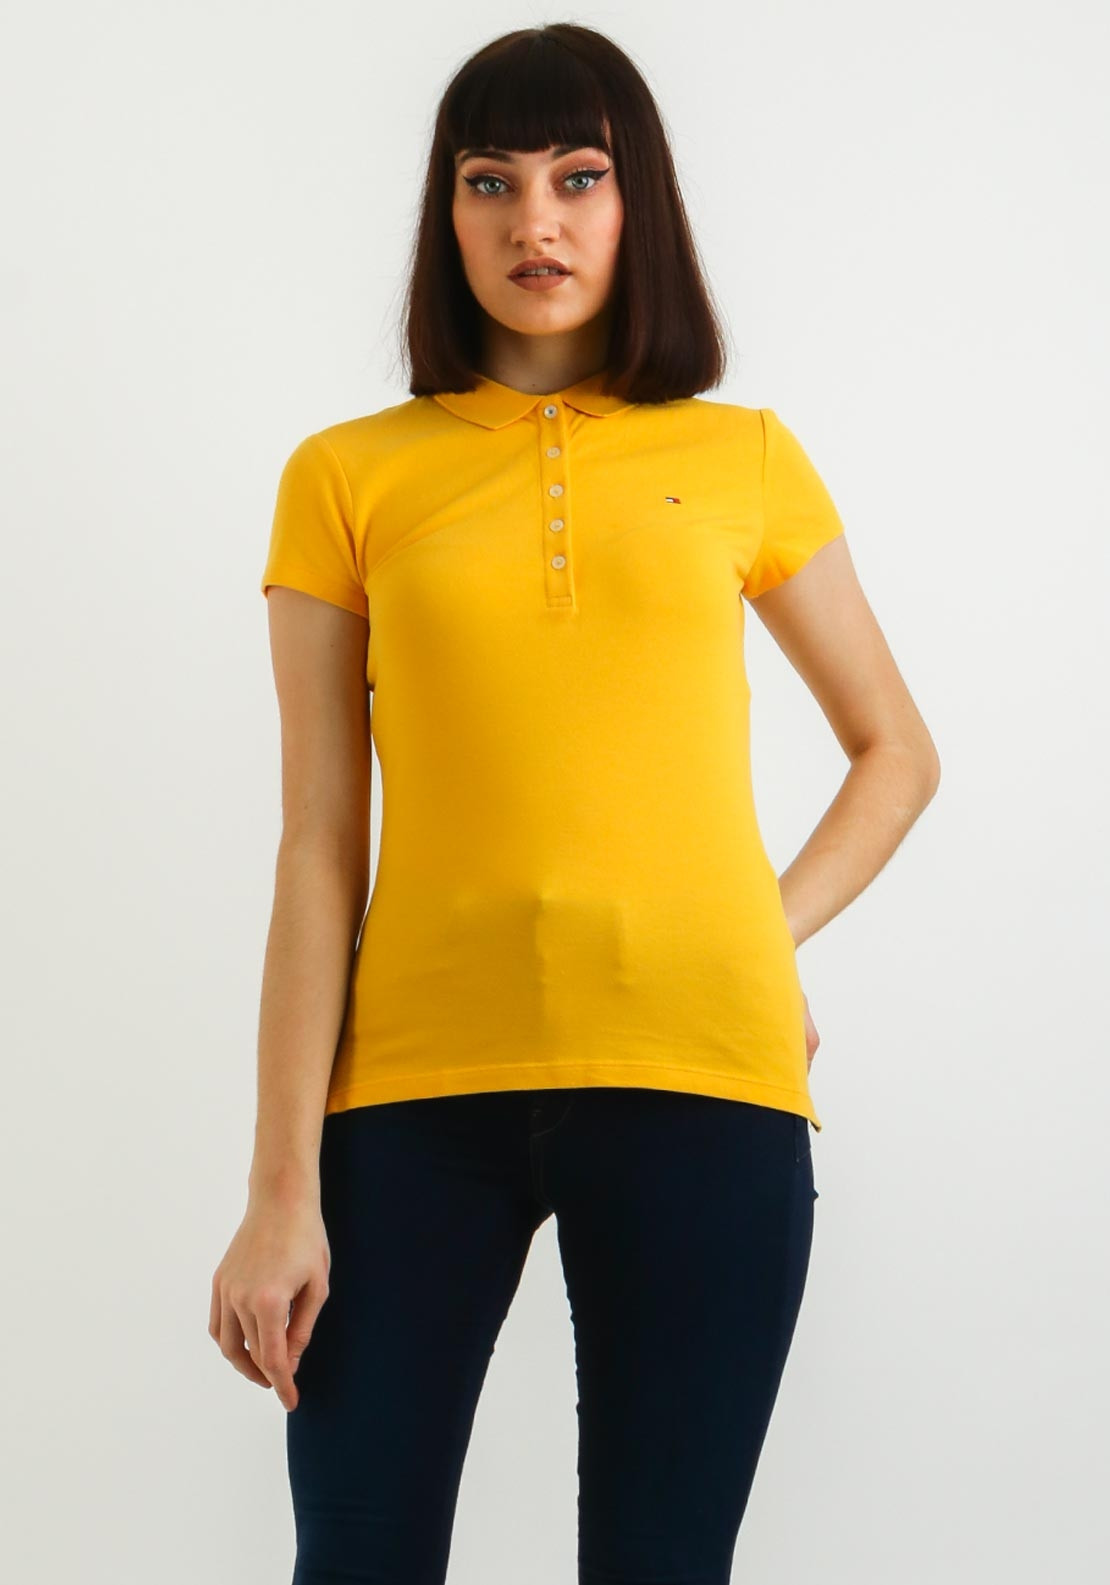 db6f66cc5 Tommy Hilfiger Womens Chiara Slim Fit Polo Shirt